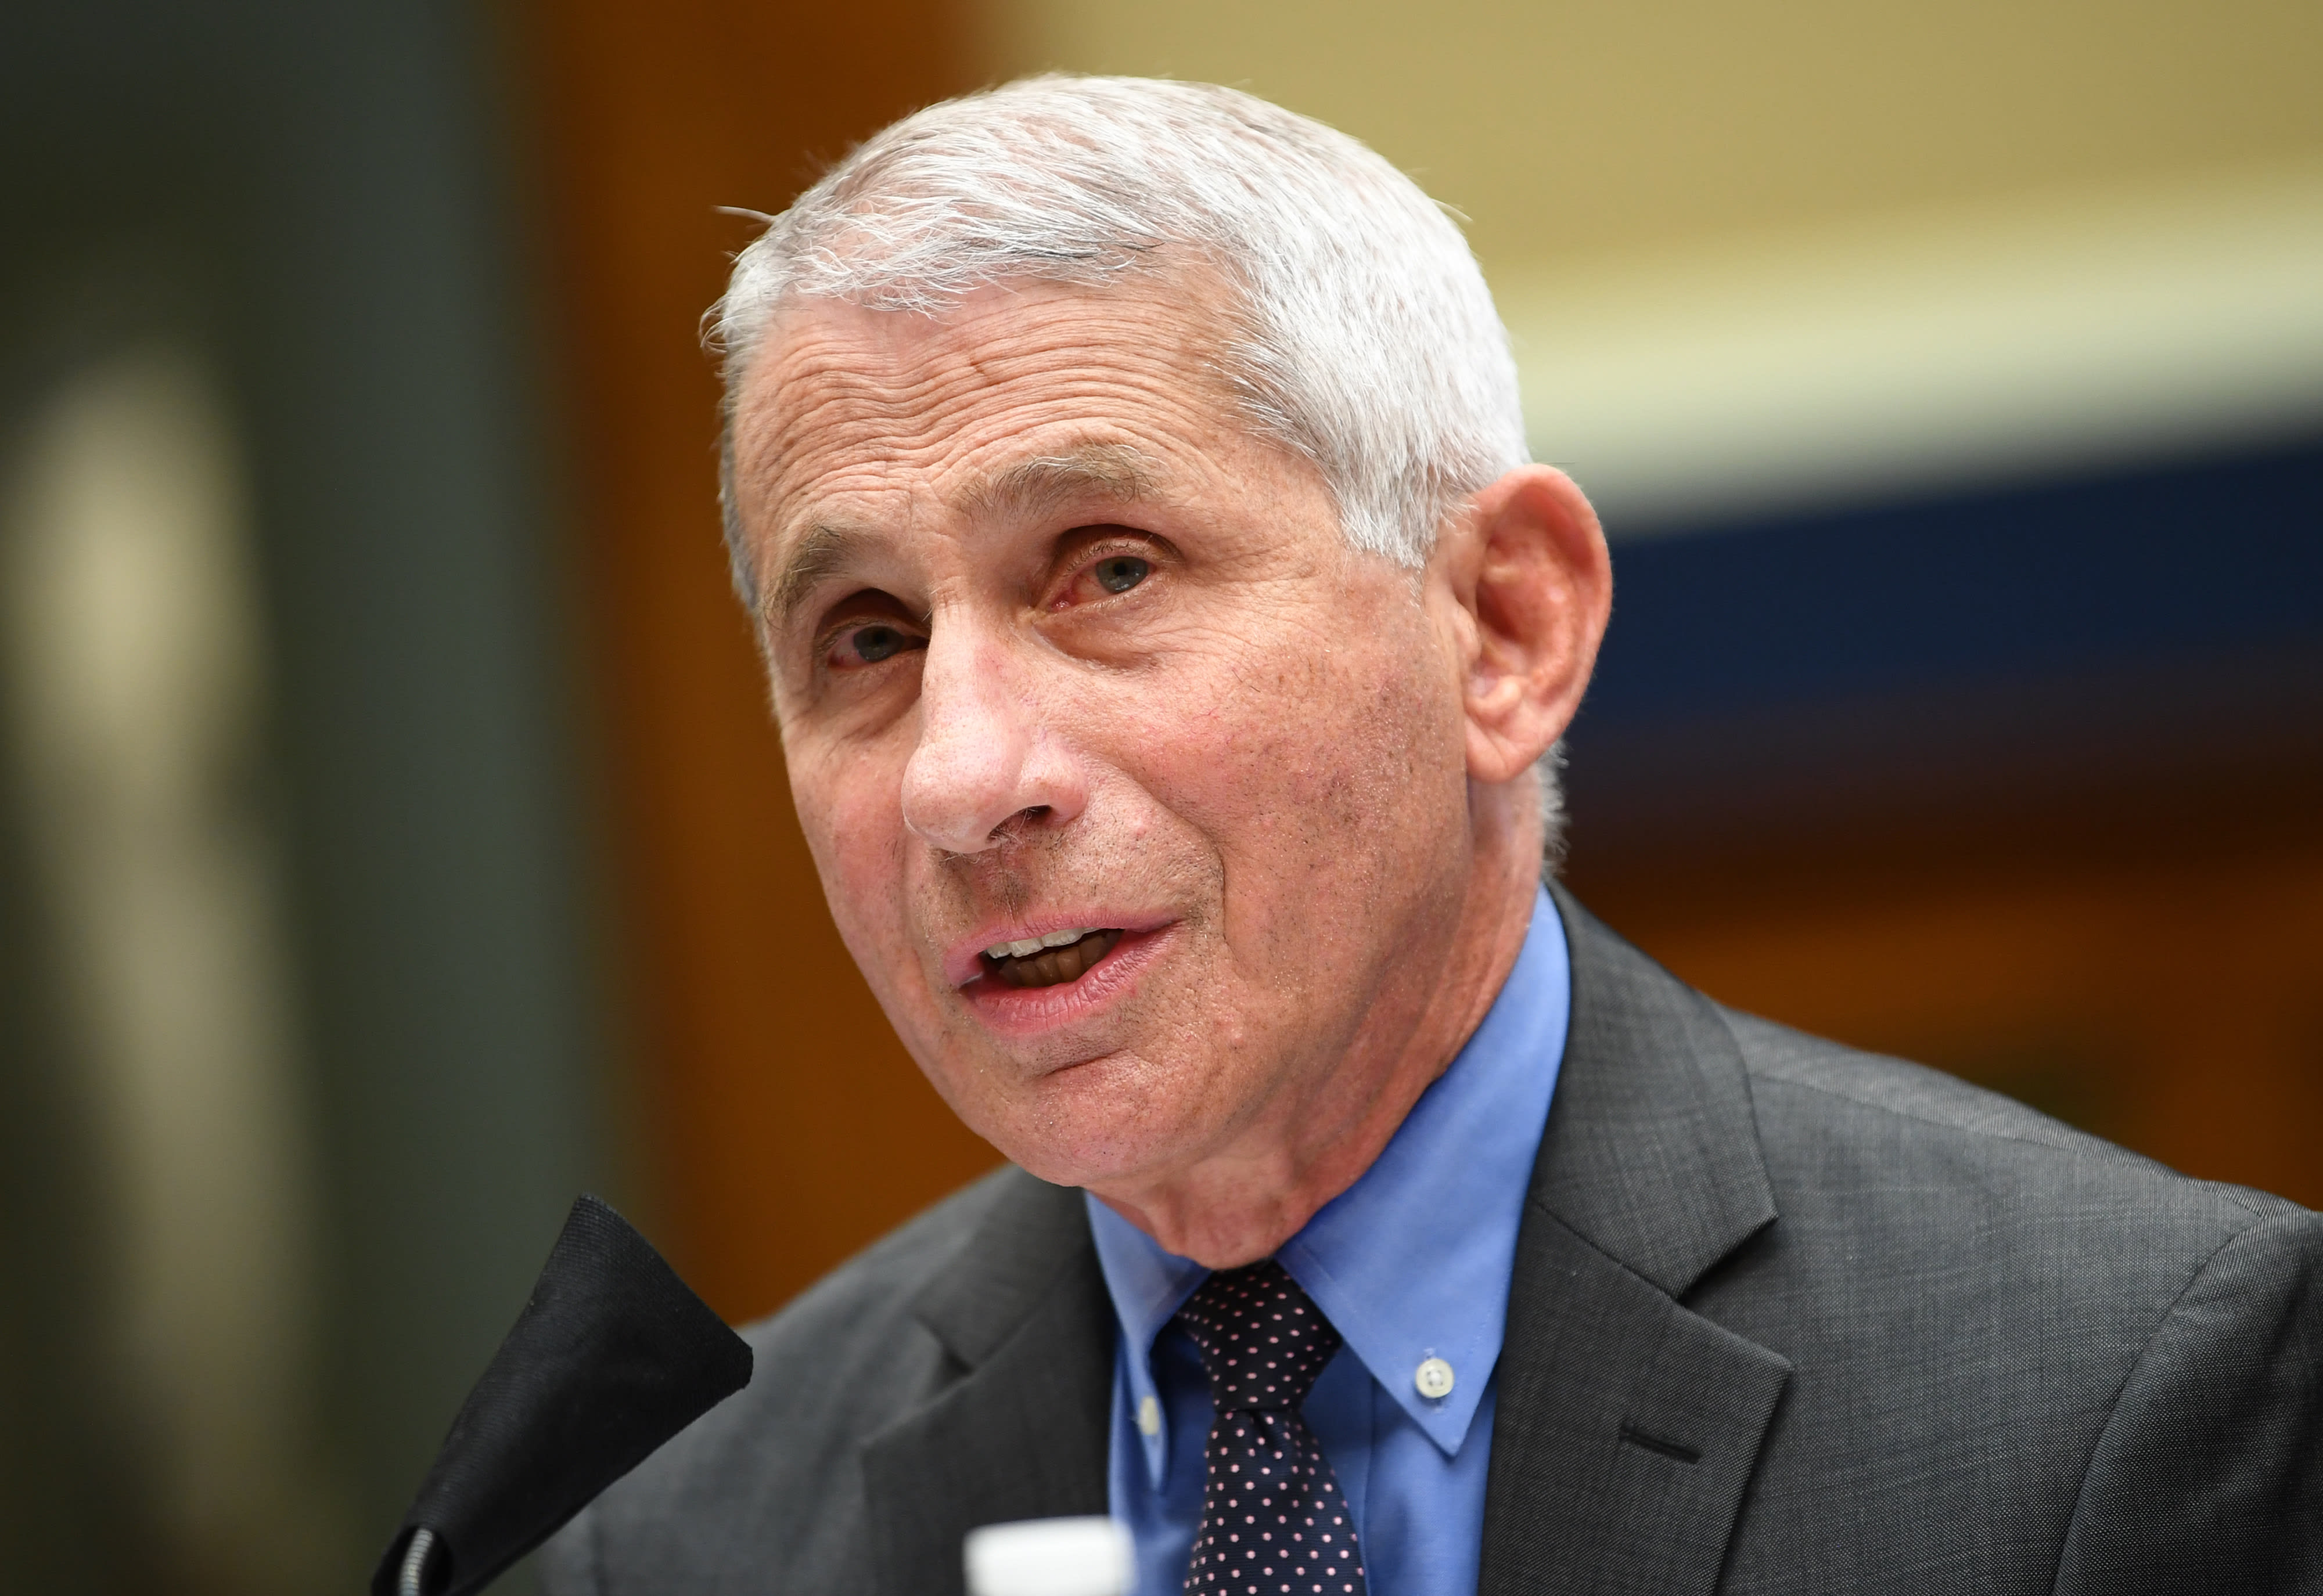 Dr. Anthony Fauci says chance